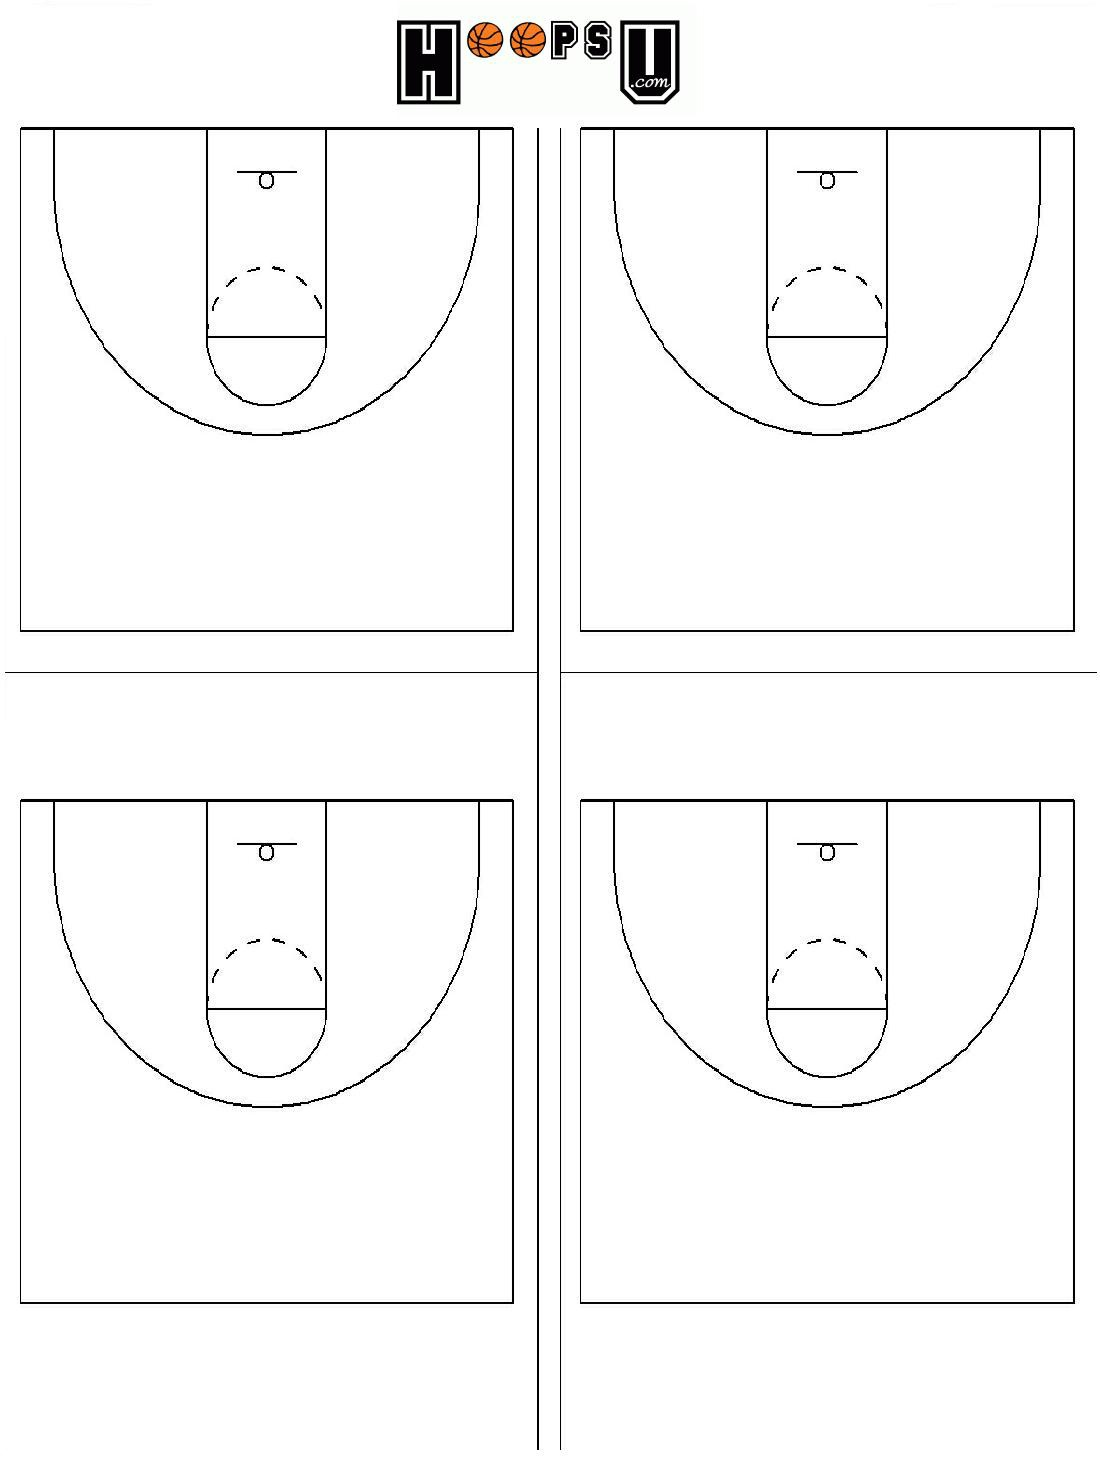 What Are The Basketball Court Dimensions - Diagrams For Court Striping - Free Printable Basketball Court